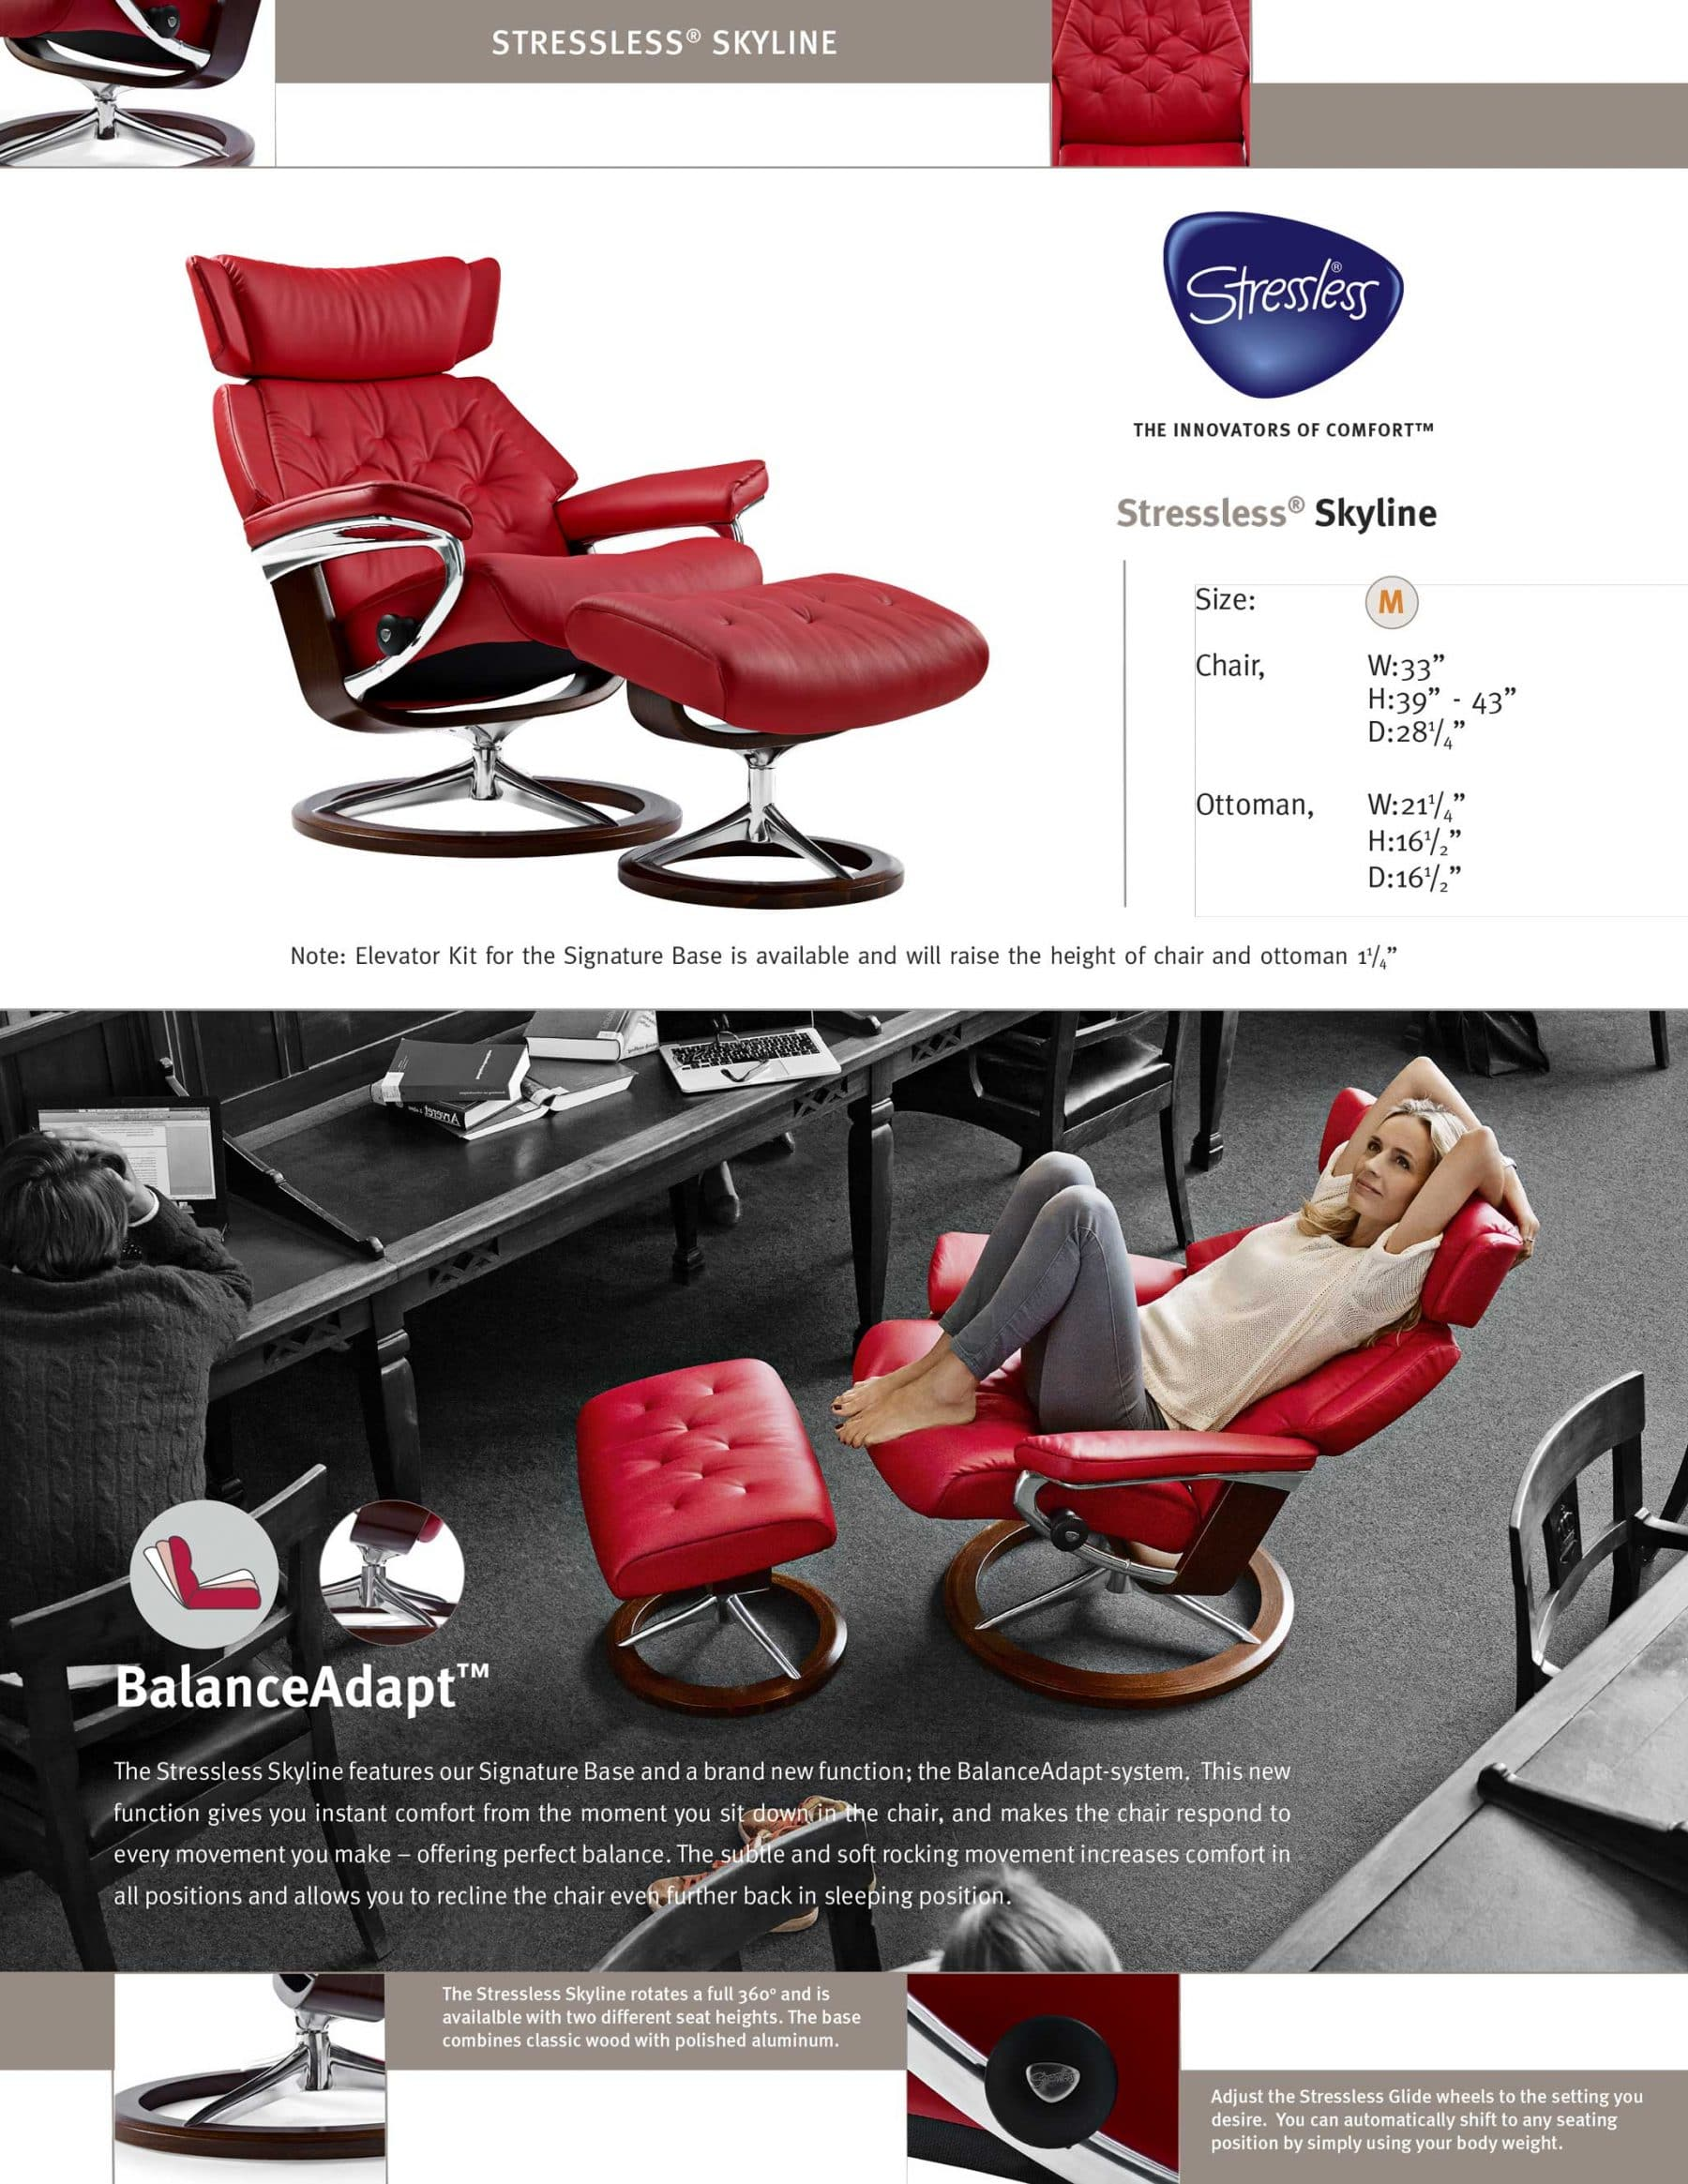 Stressless Skyline Product Sheet